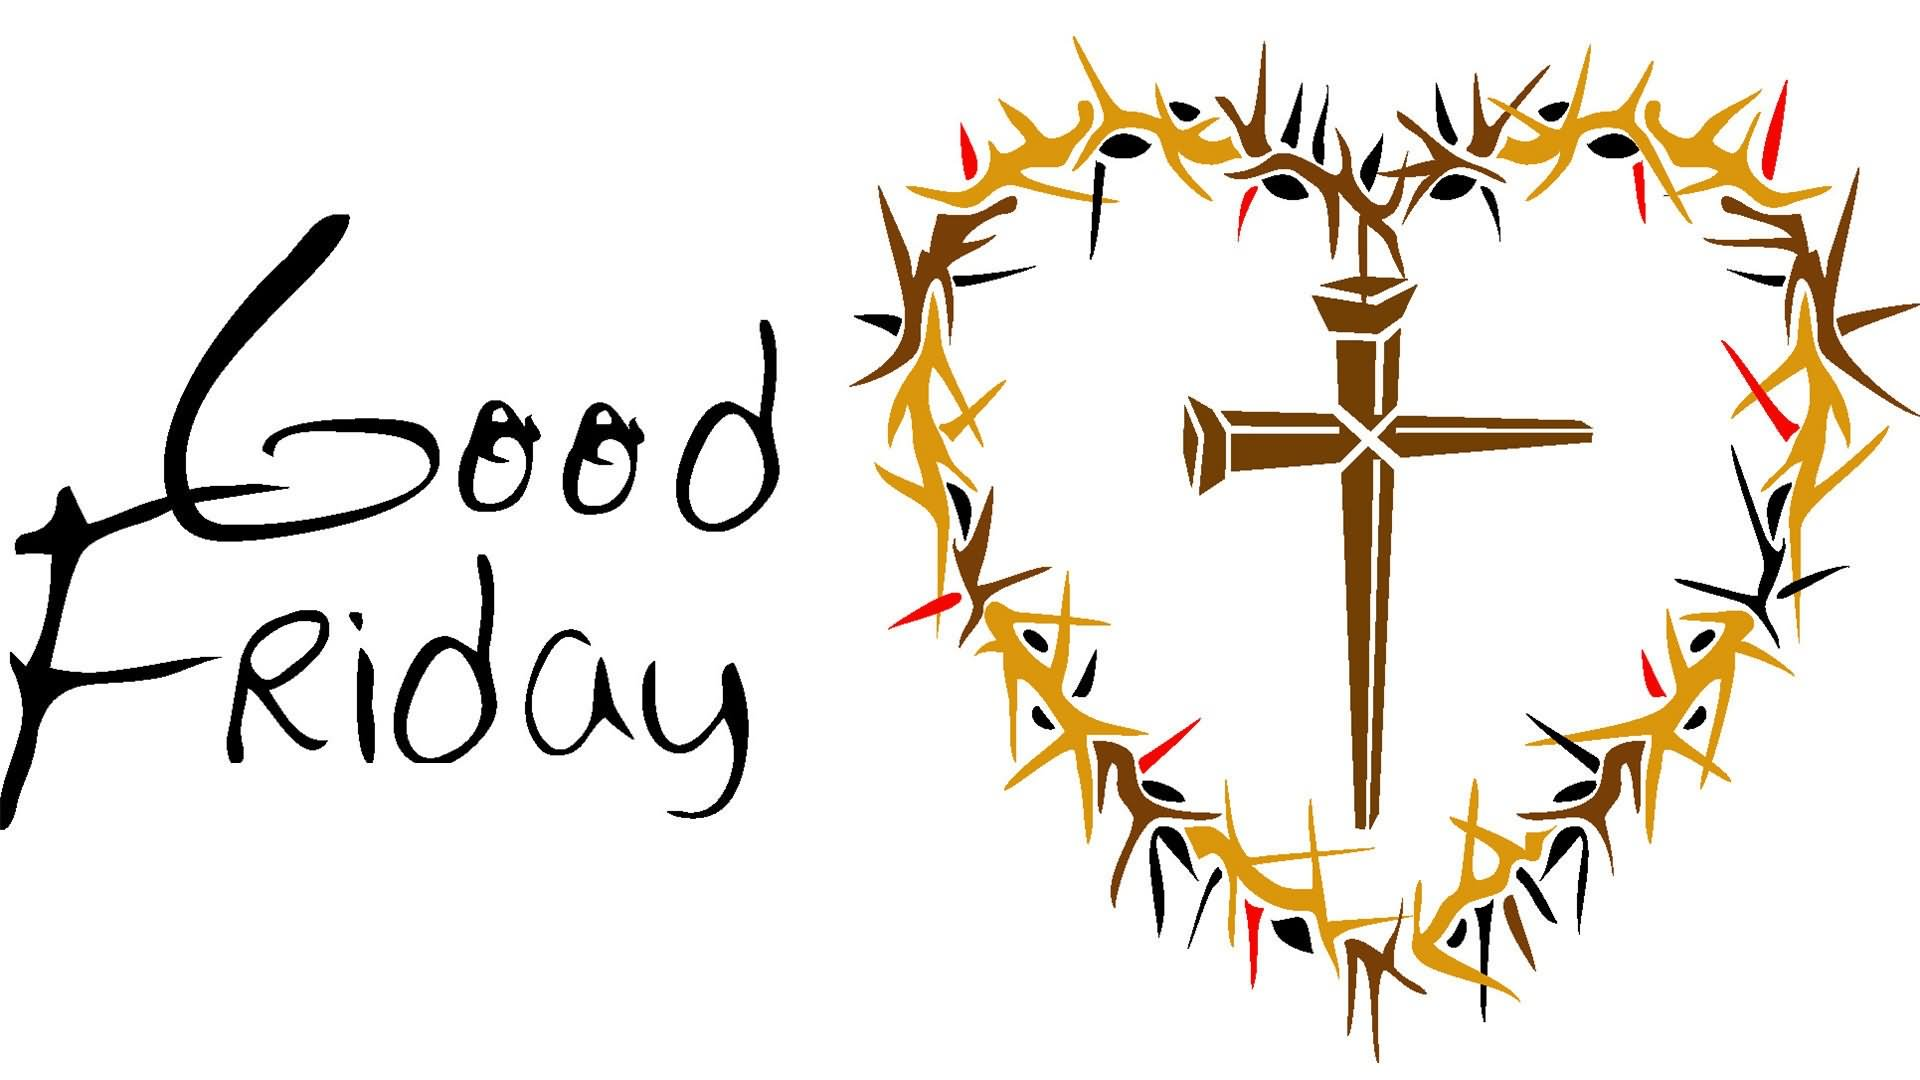 Good friday images clipart graphic free download 20 Very Beautiful Good Friday Clipart Pictures graphic free download